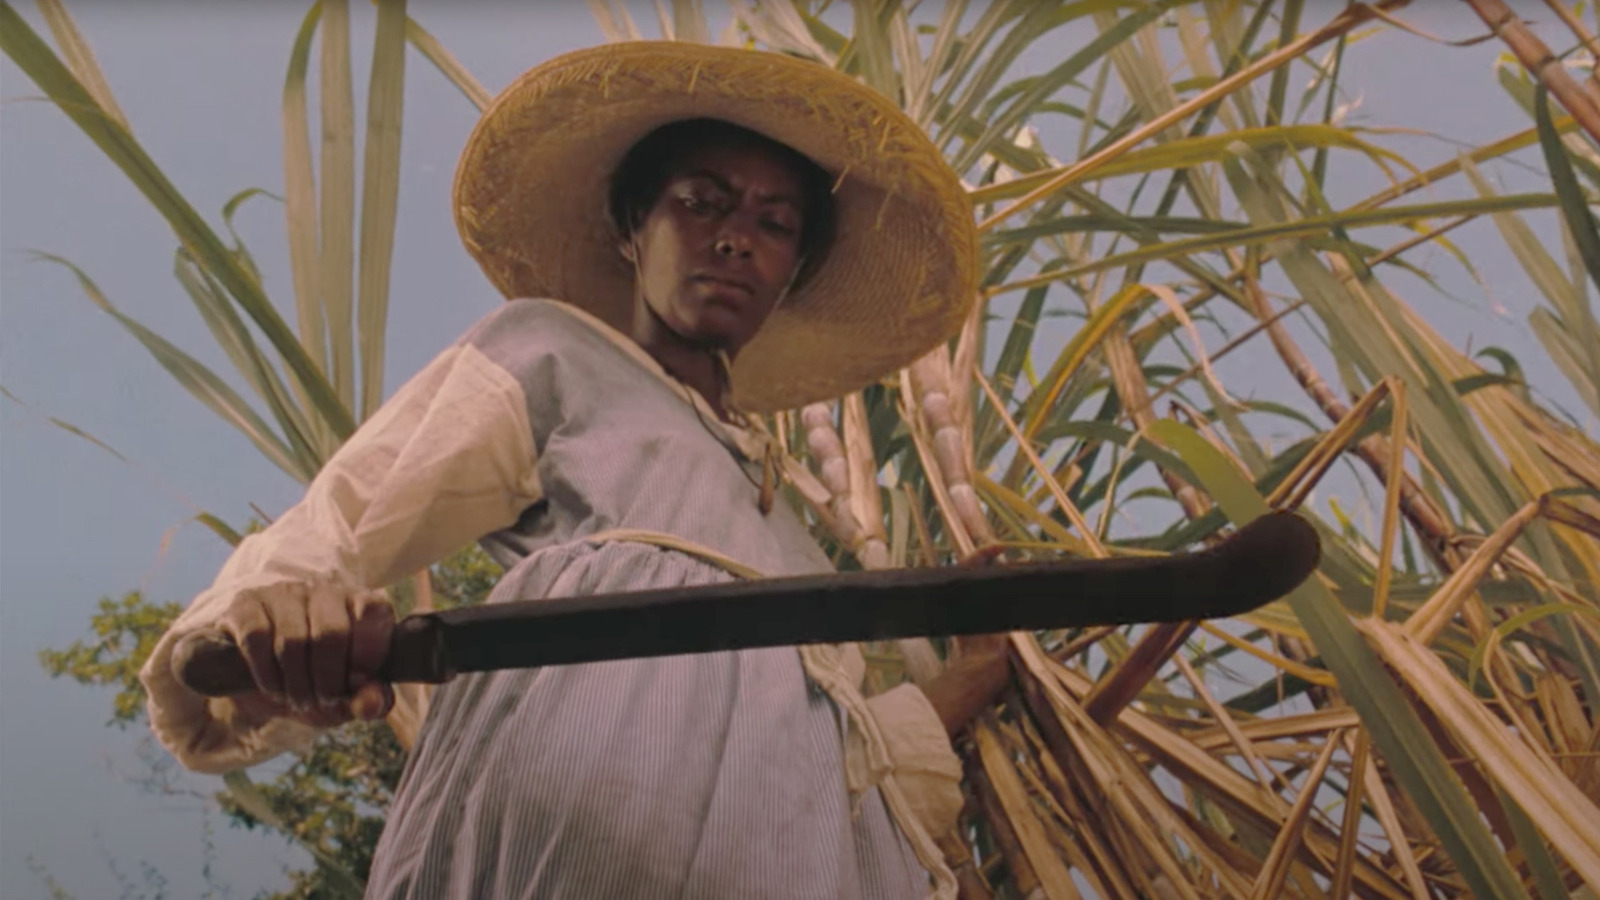 Sankofa Trailer: Ava Duvernay Spearheads A 4K Restoration Of A Lost Classic For Netflix